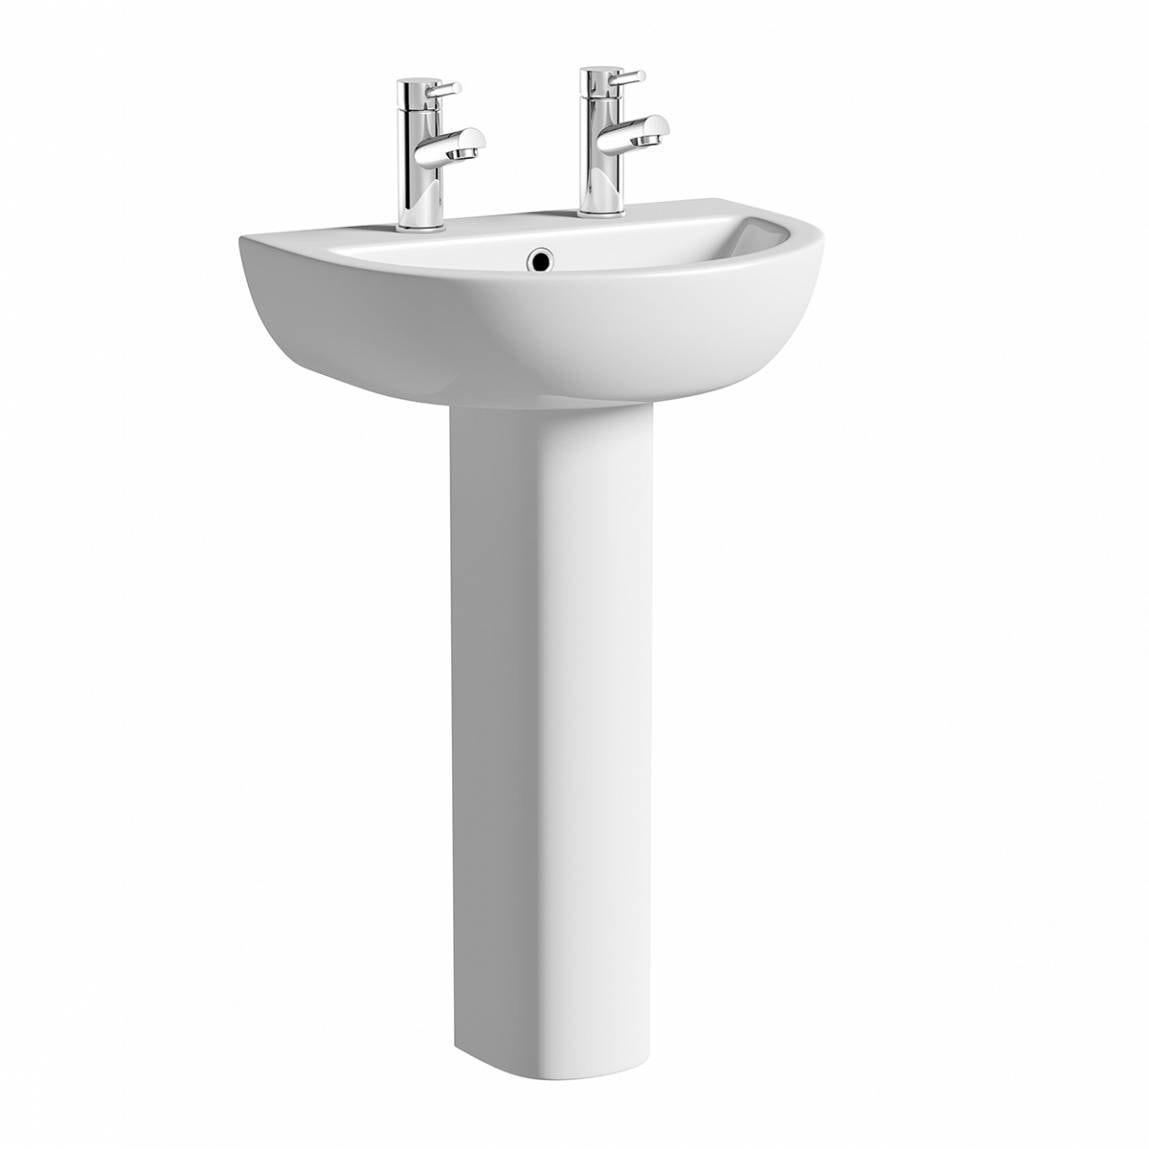 Orchard Elena 2 tap hole full pedestal basin with basin waste